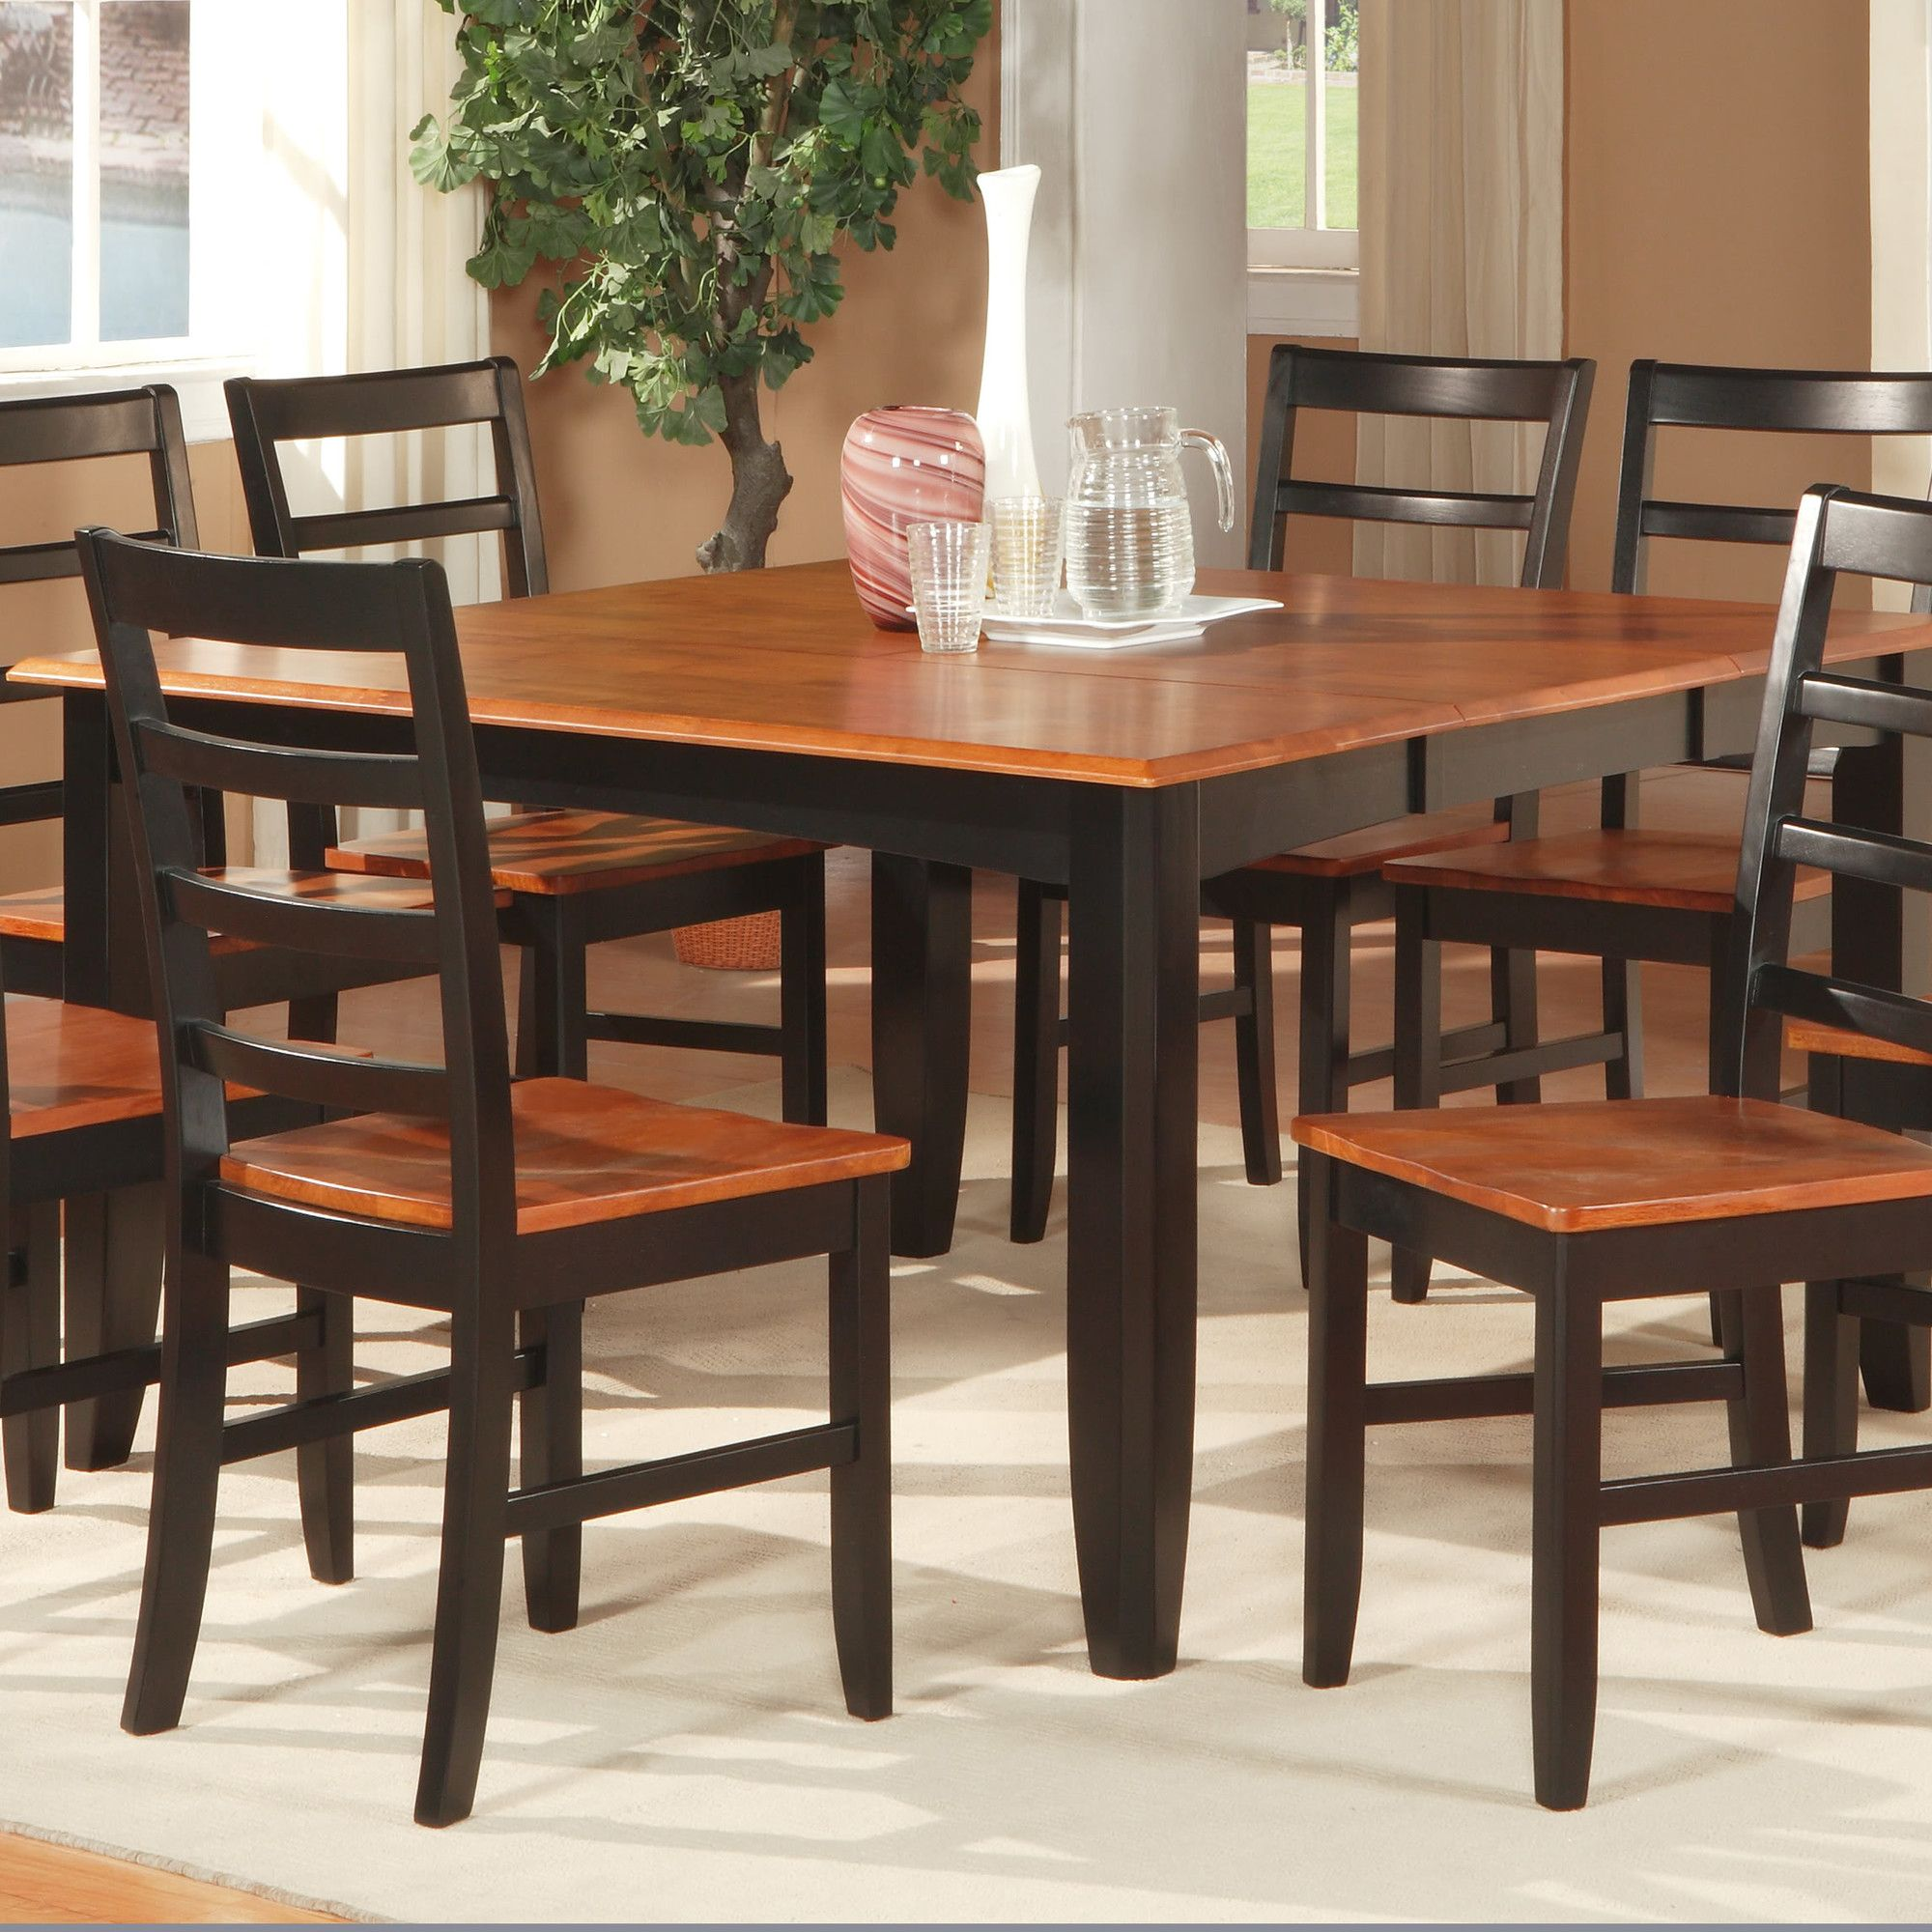 Parfait Dining Table Wayfair Square Dining Tables Dining